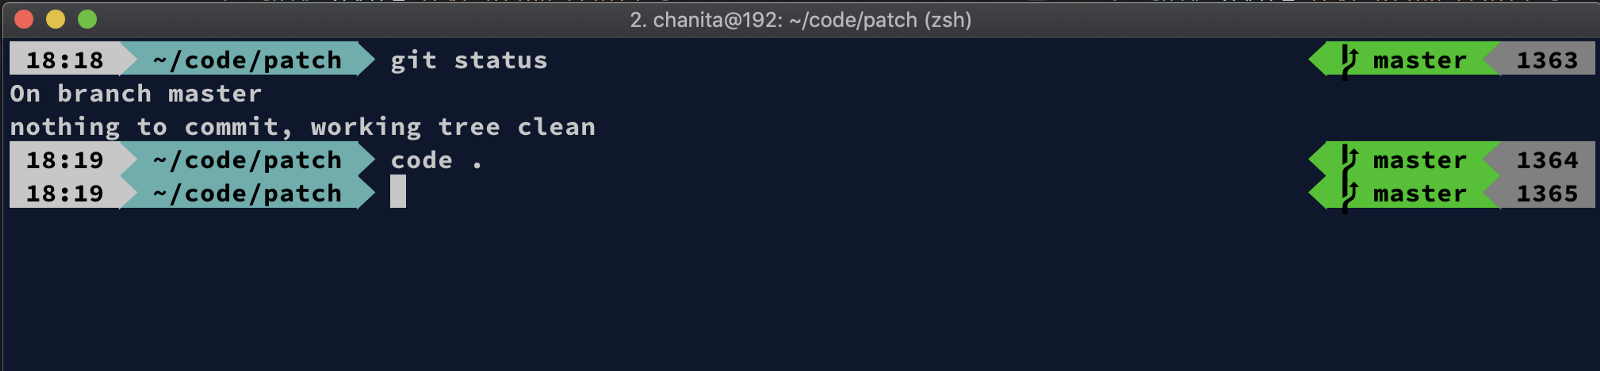 patch file git diff